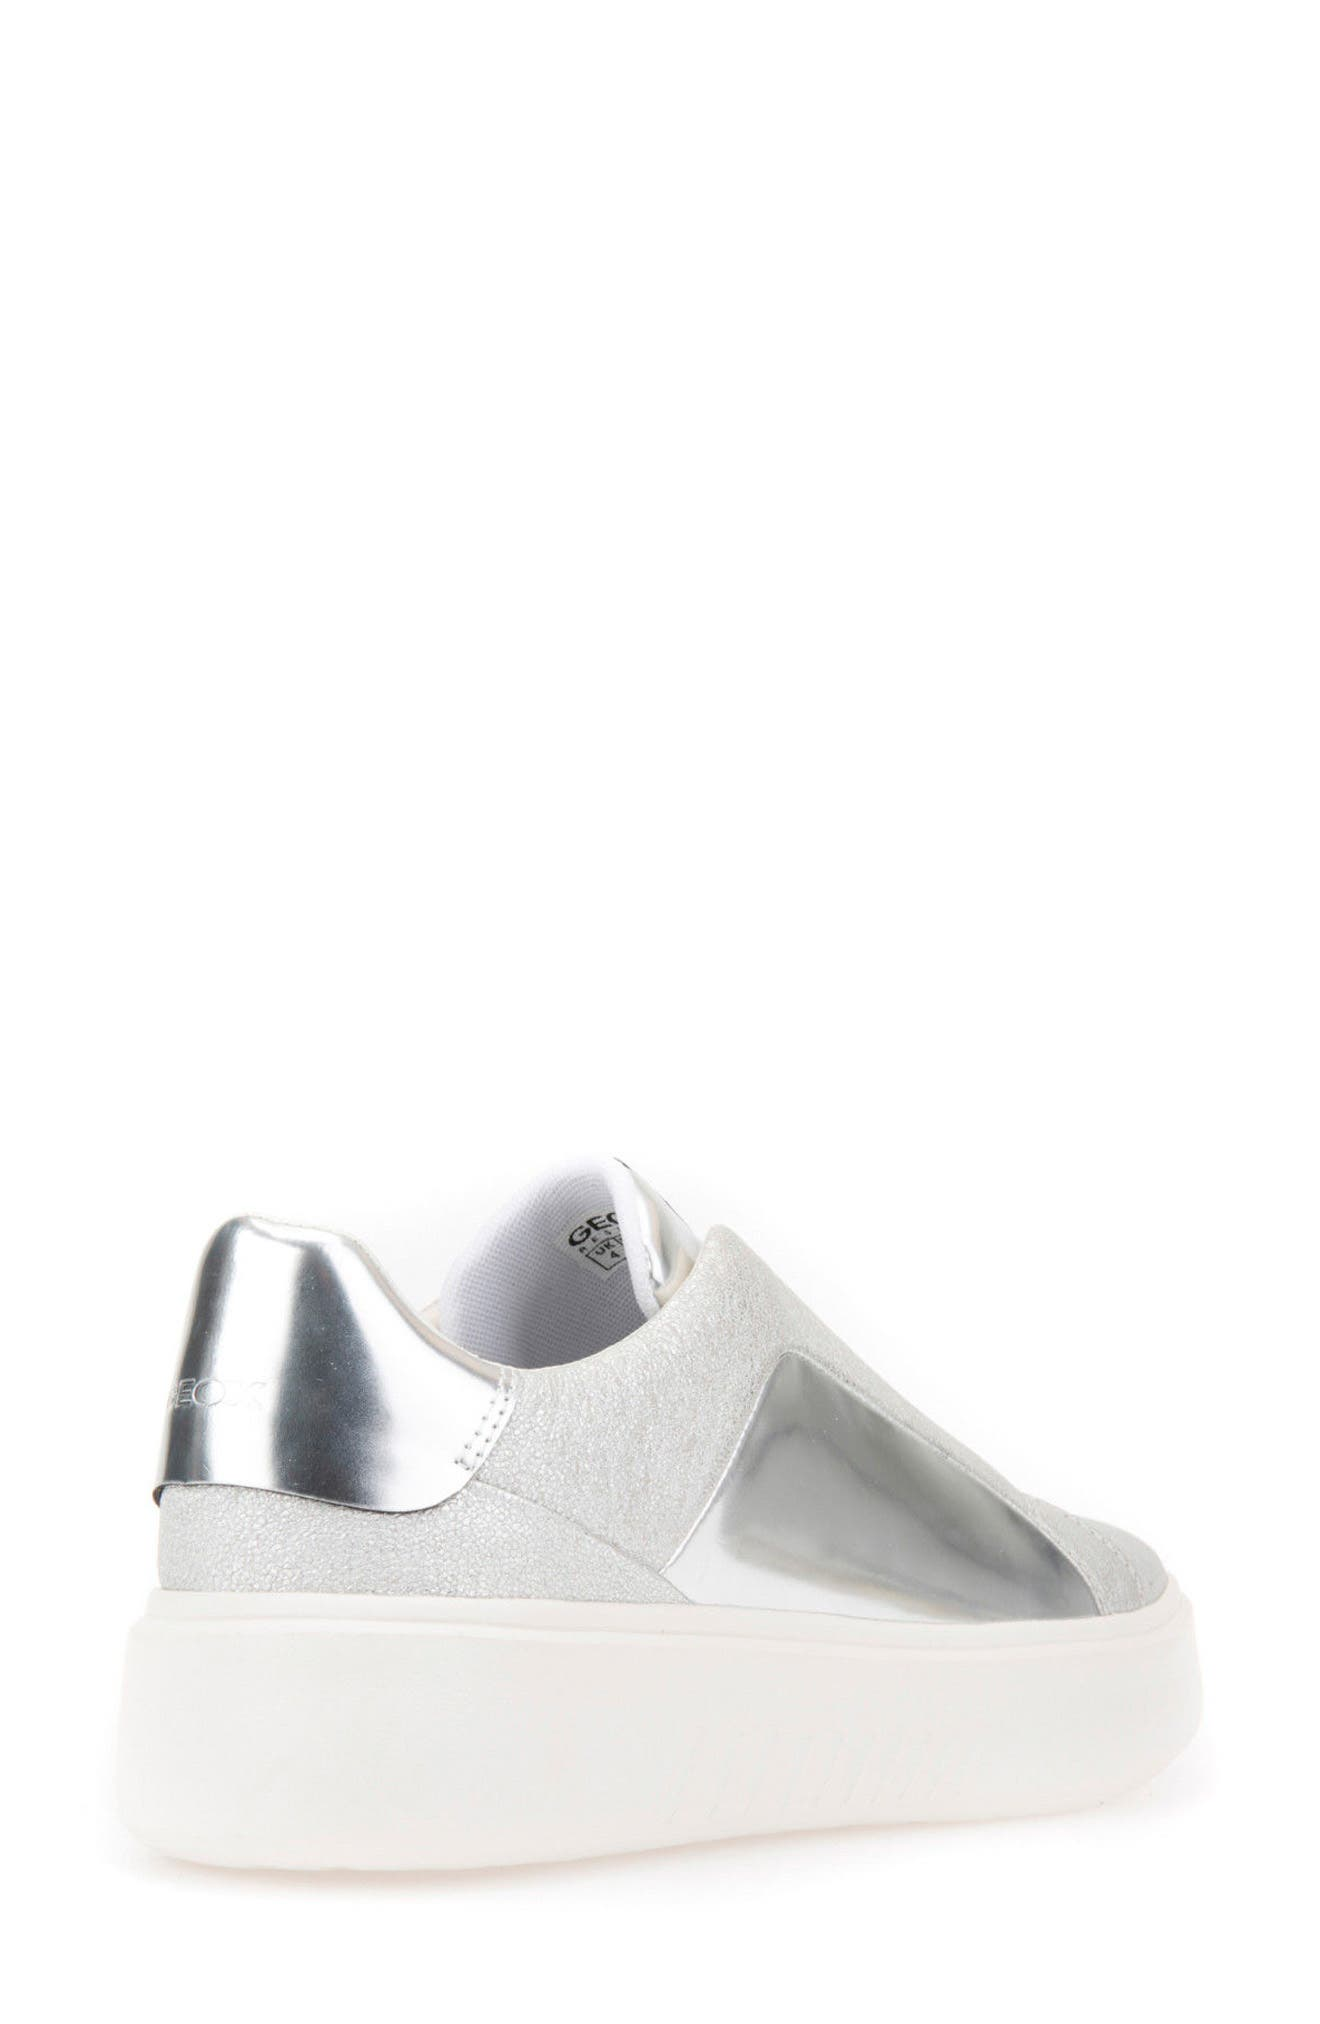 Nhenbus Slip-On Sneaker,                             Alternate thumbnail 2, color,                             040